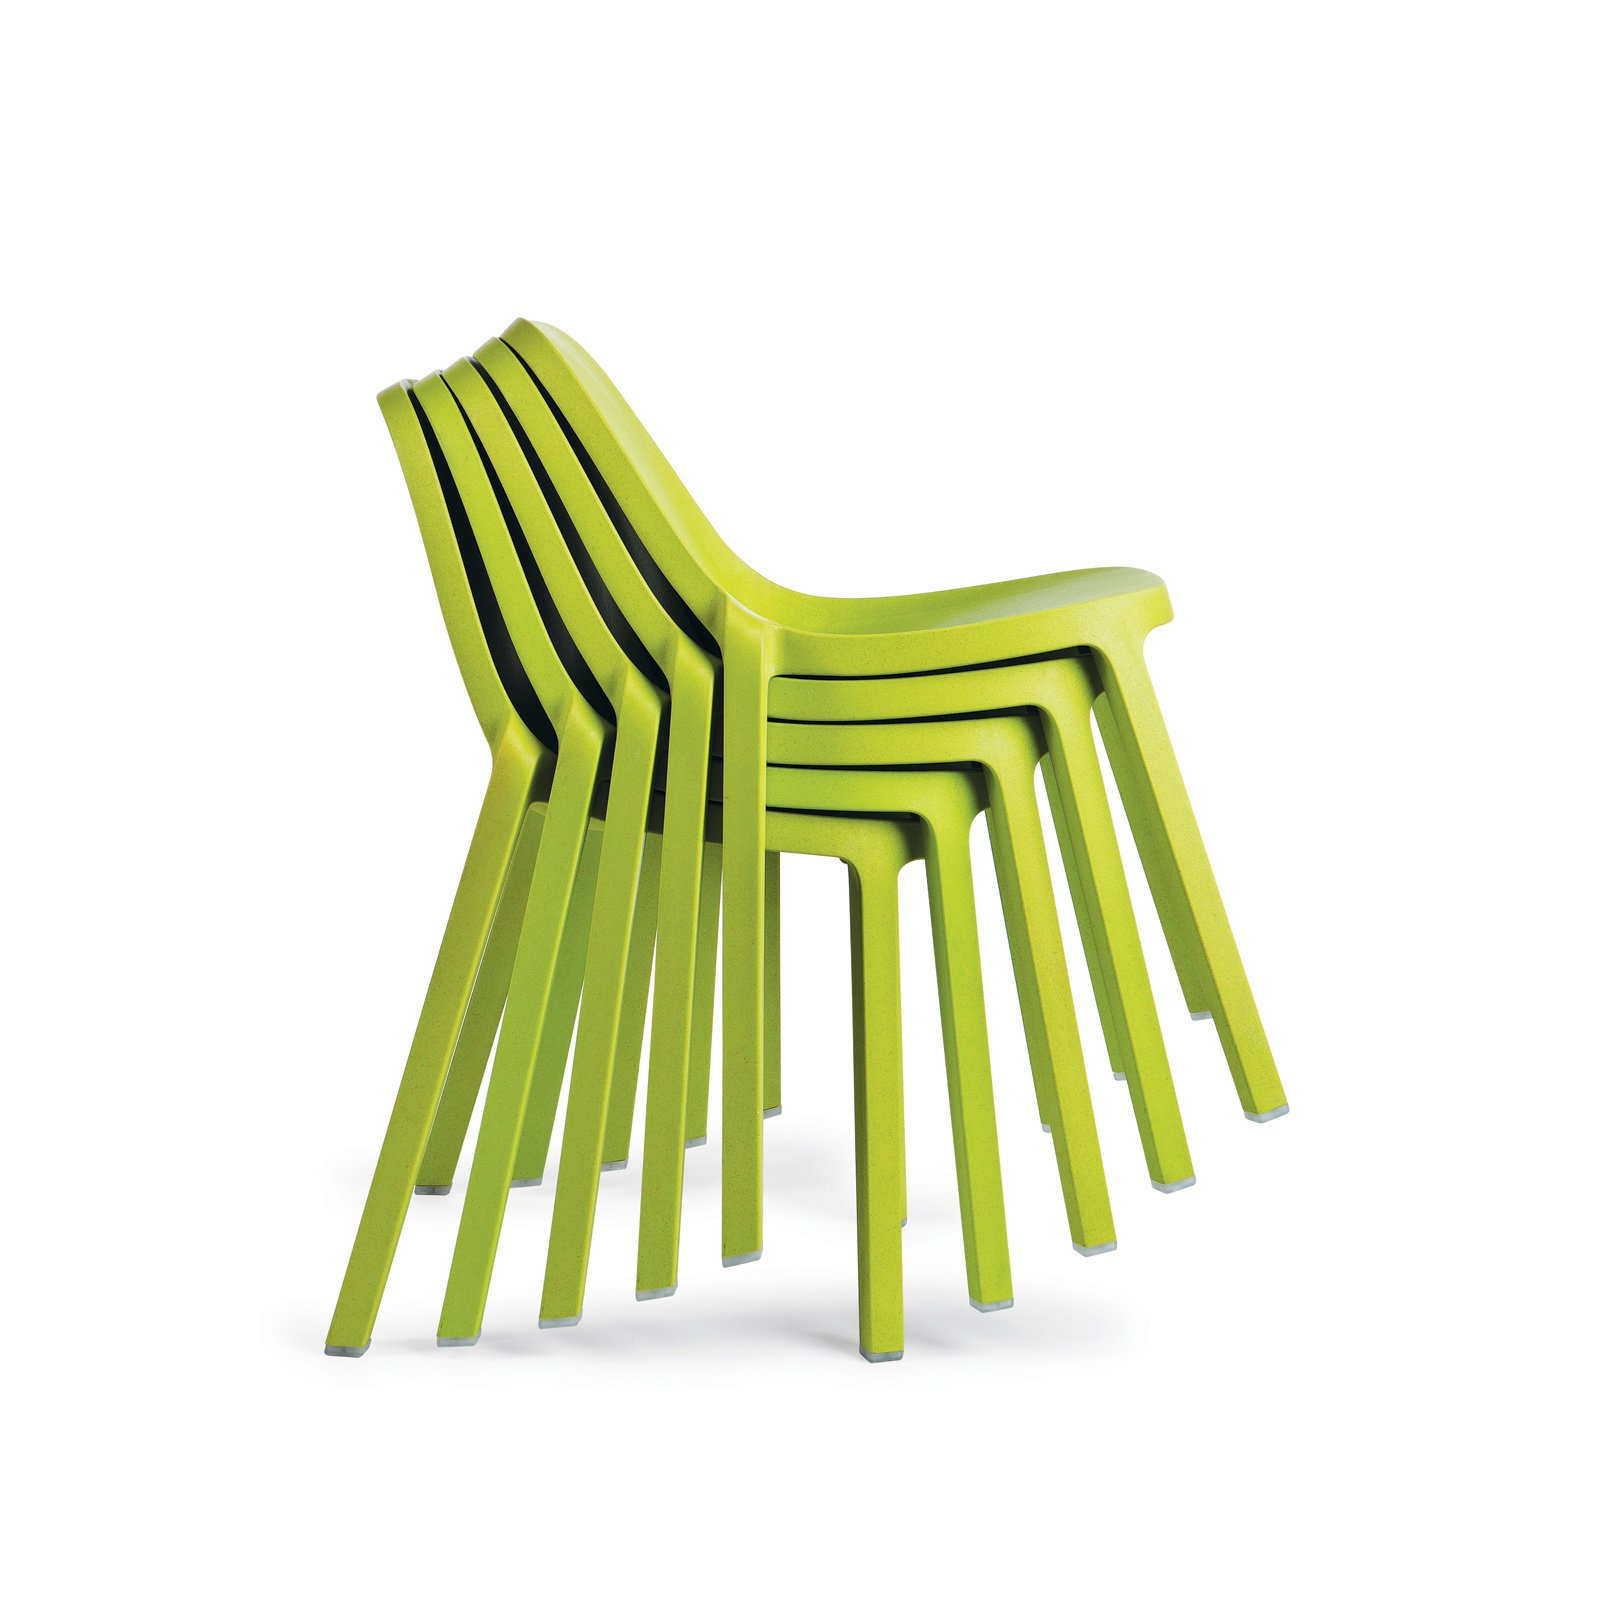 "Search ""exteriorroof-material--green"" from Broom Chair by Emeco"